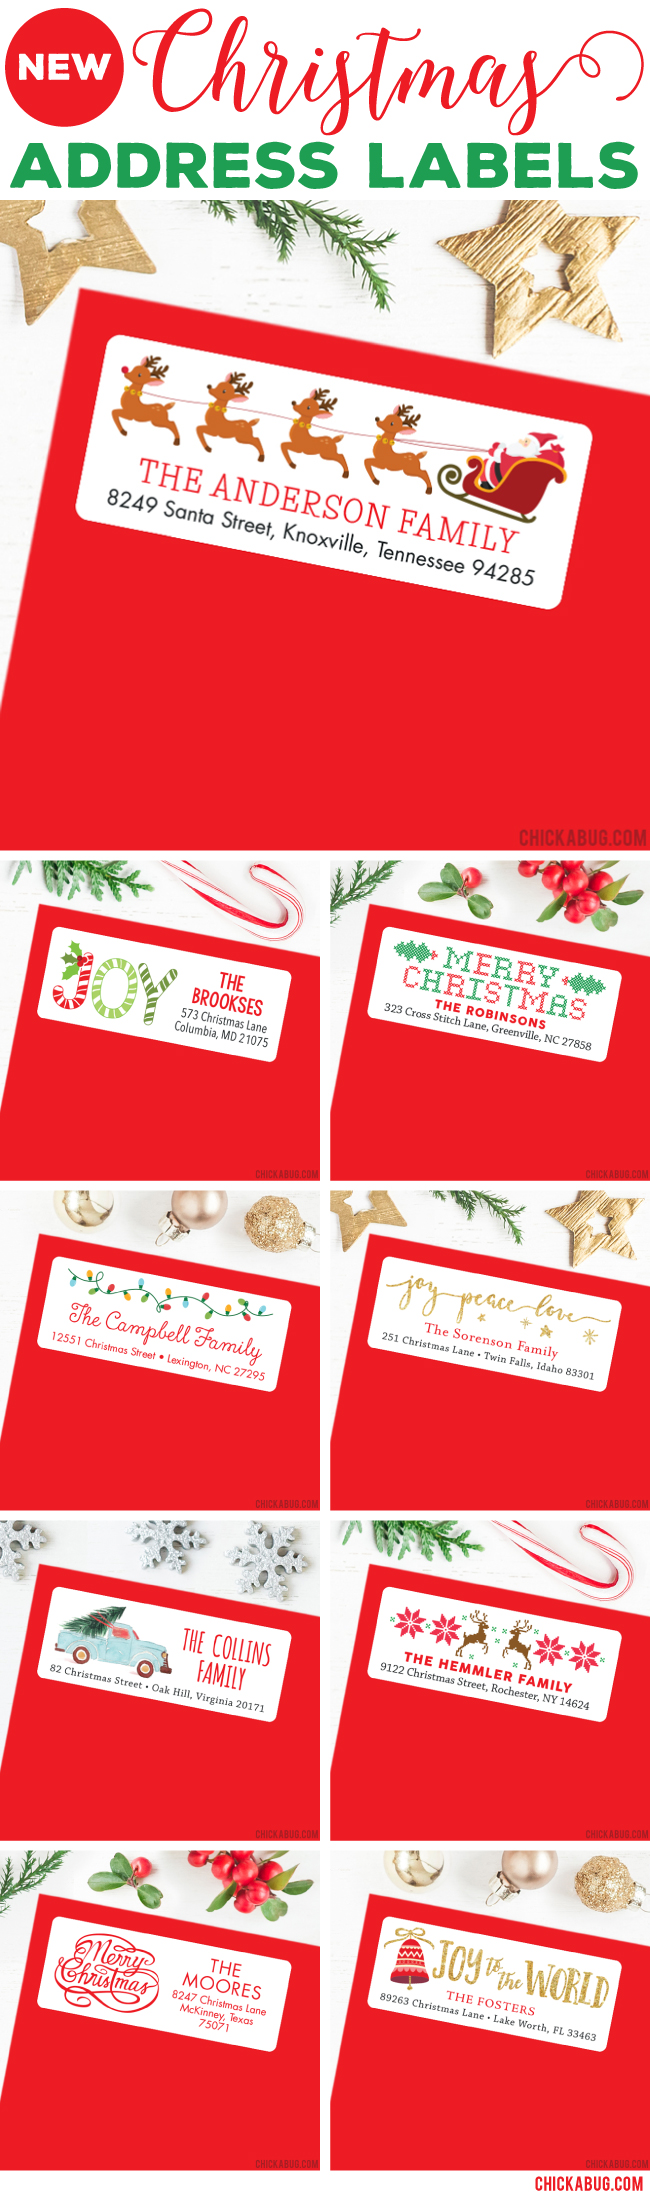 Christmas Address Labels. Tons of festive designs to choose from!